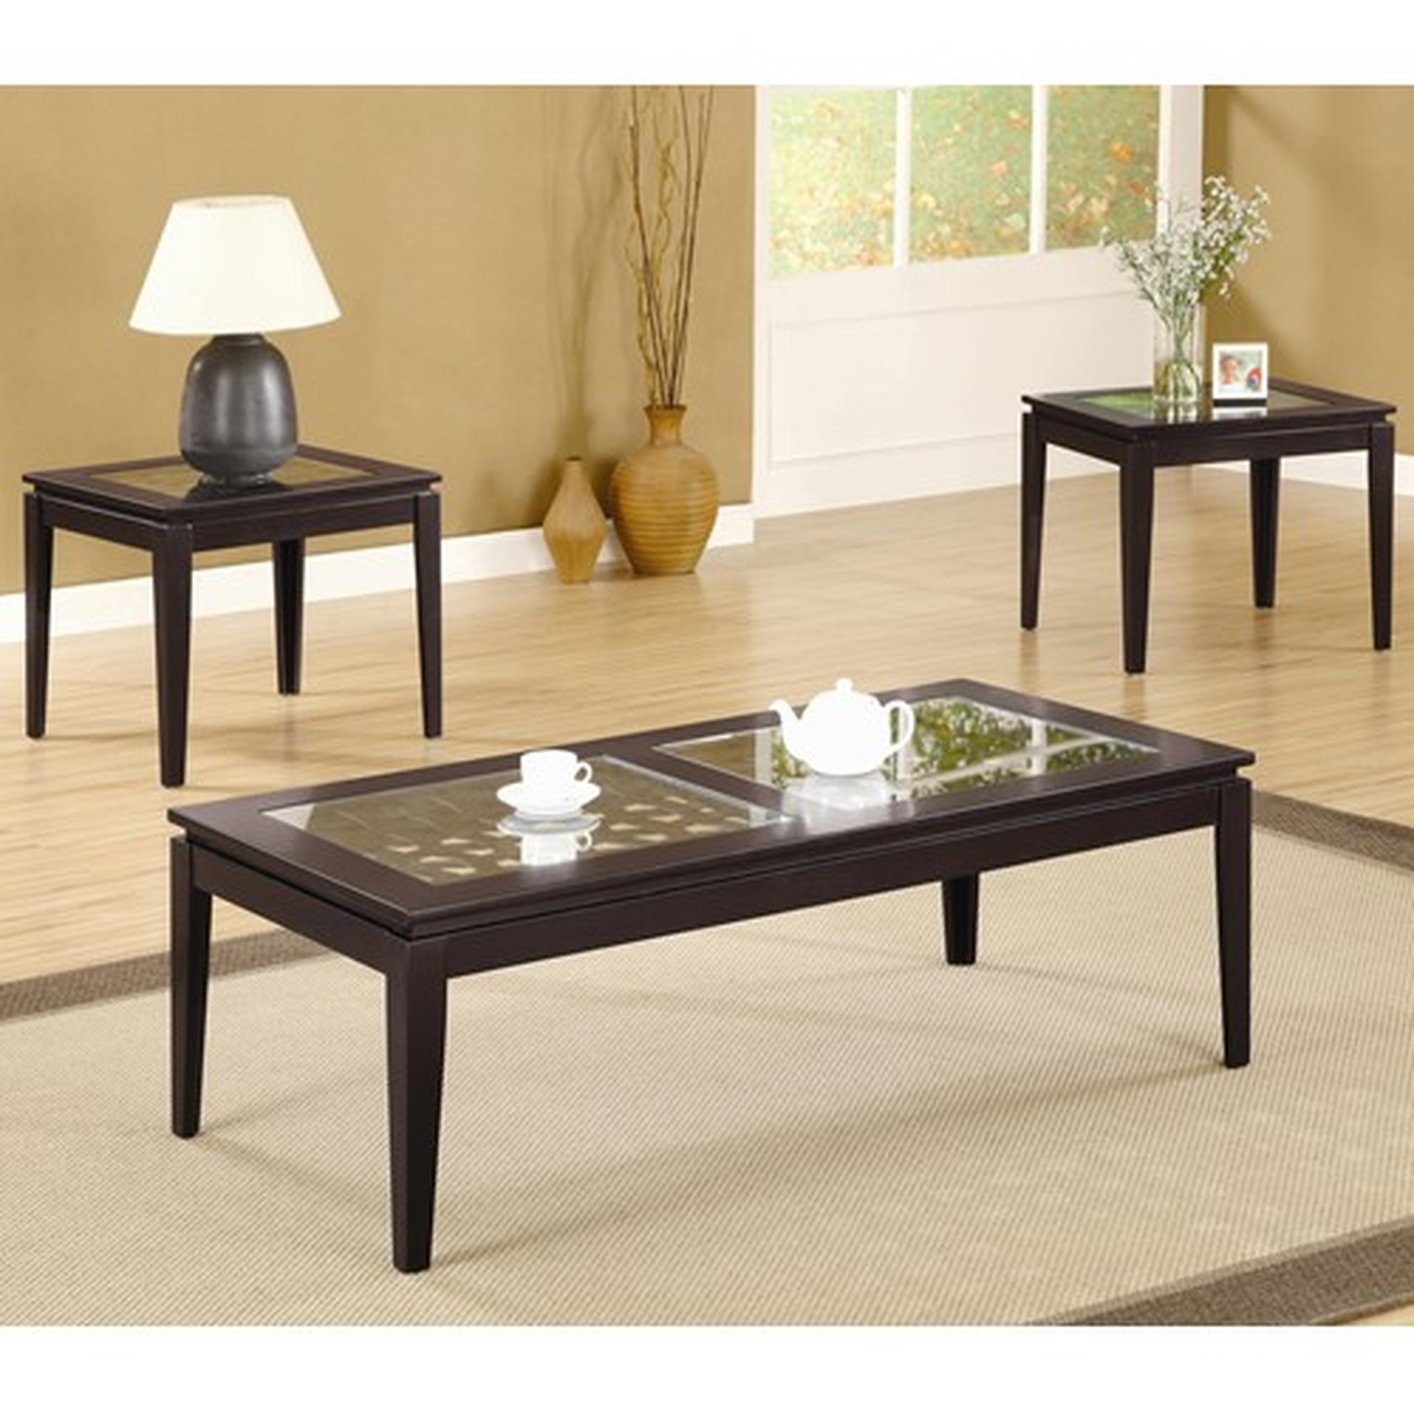 Glass Coffee Tables Set: Coaster 700205 Brown Glass Coffee Table Set